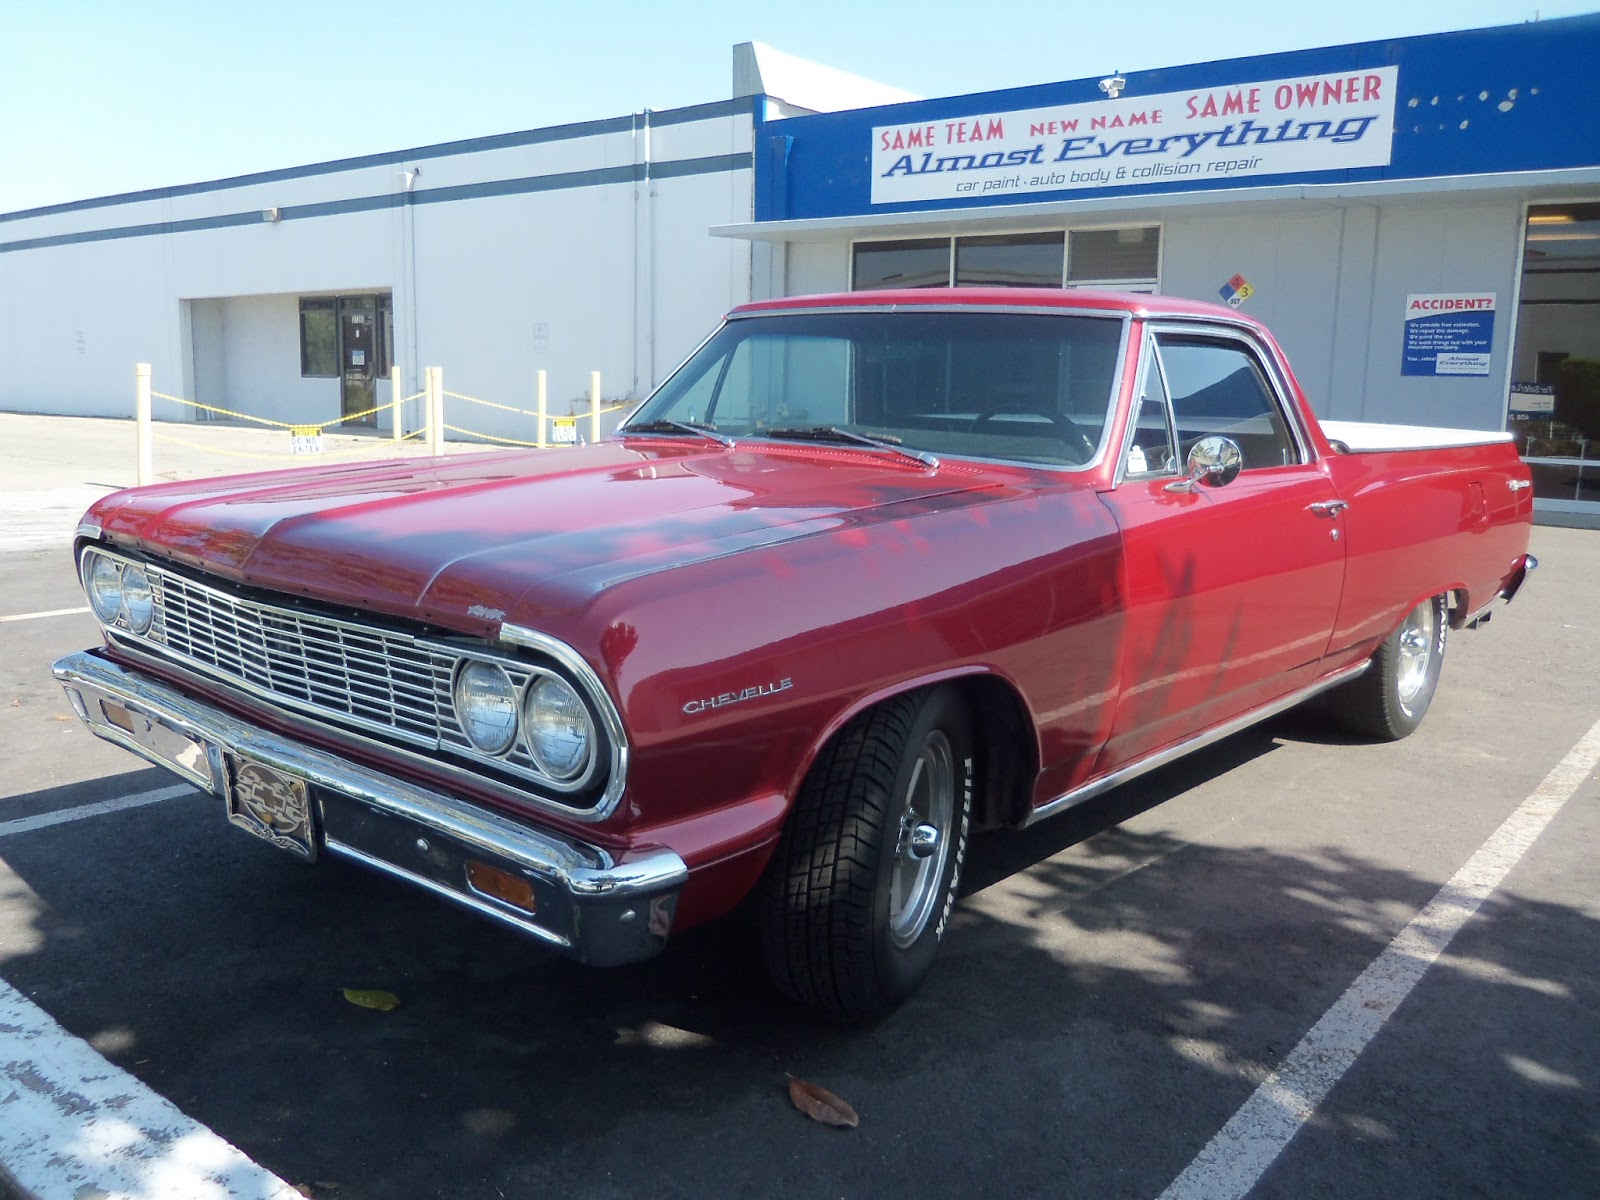 Auto Body Collision Repair Car Paint In Fremont Hayward Union City 1964 Chevy Truck Colors After